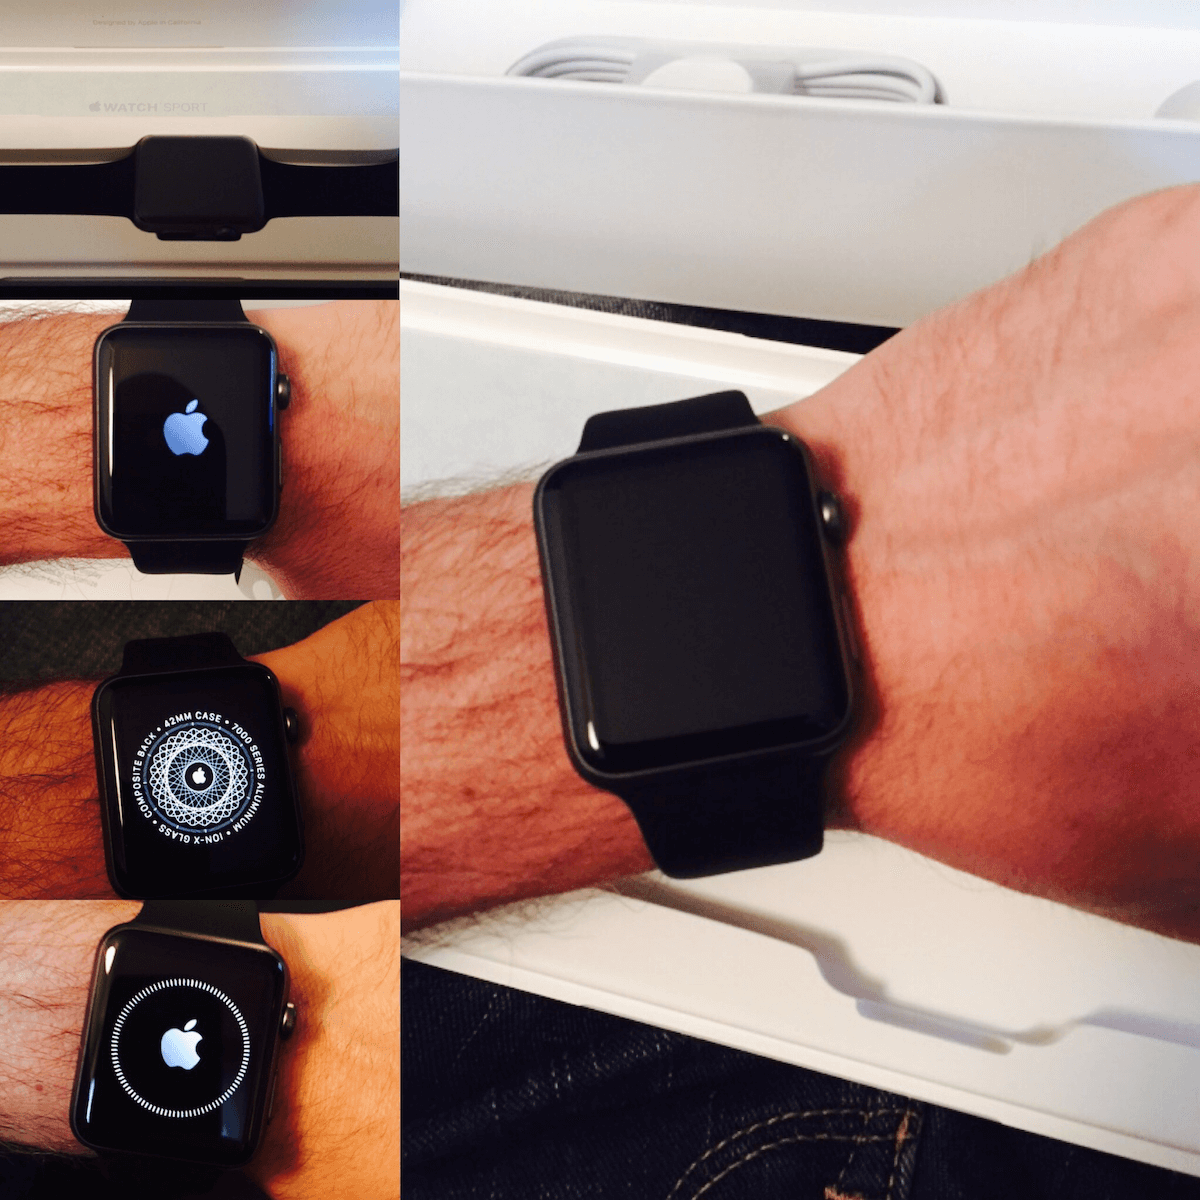 One month with Apple Watch